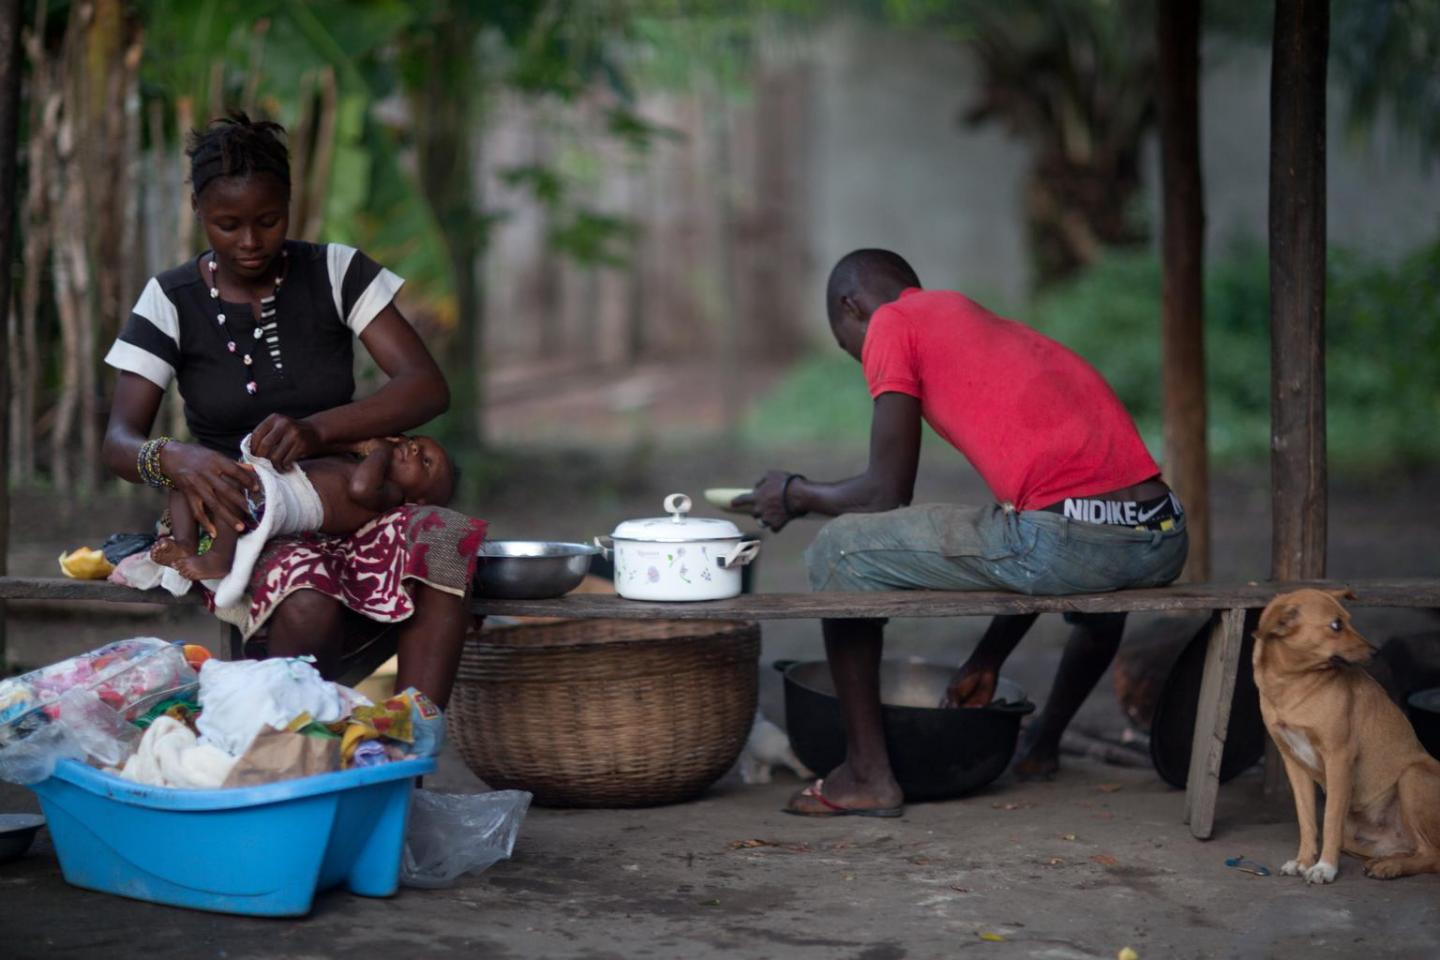 Amina Kamara, 15, tends to her son, Ali, 6 months, while her husband, Lamine, serves food from a cooking pot in Motonko Village, Ribbi Chiefdom, Moyamba District